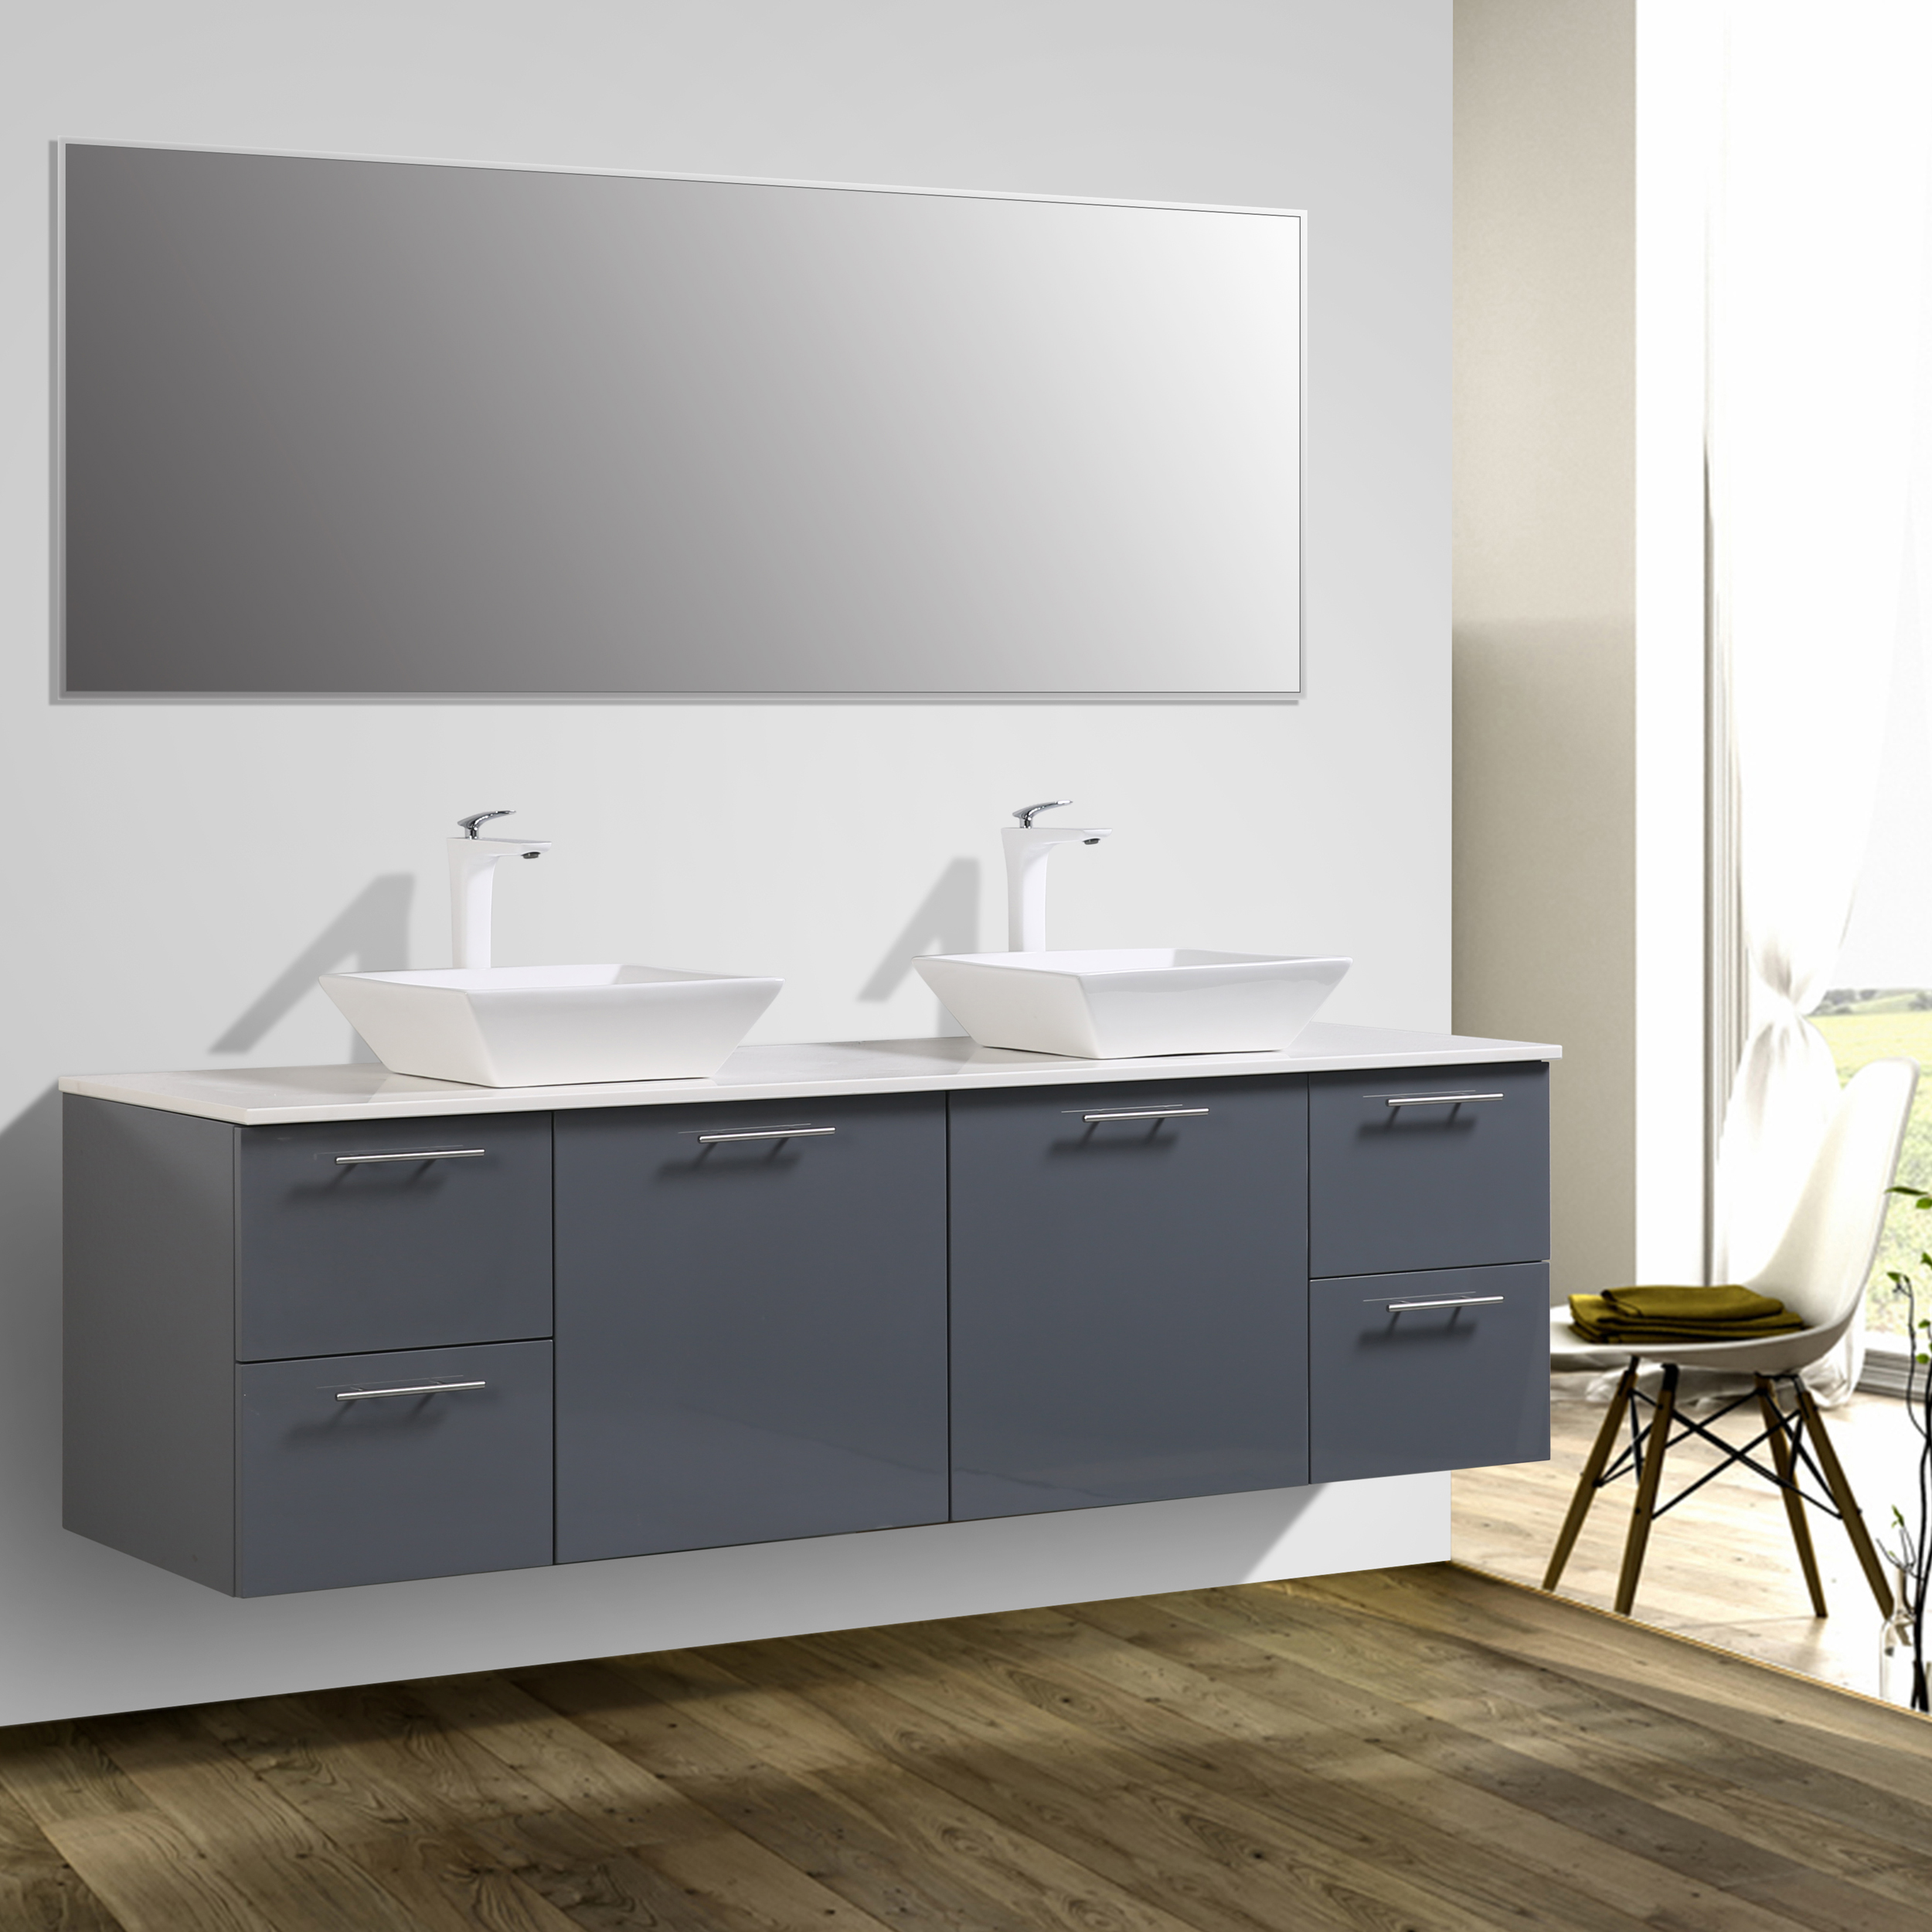 tempered product glass with mount wall bathroom set single vanity sinks portland element in vanities vessel sink design madrid espresso